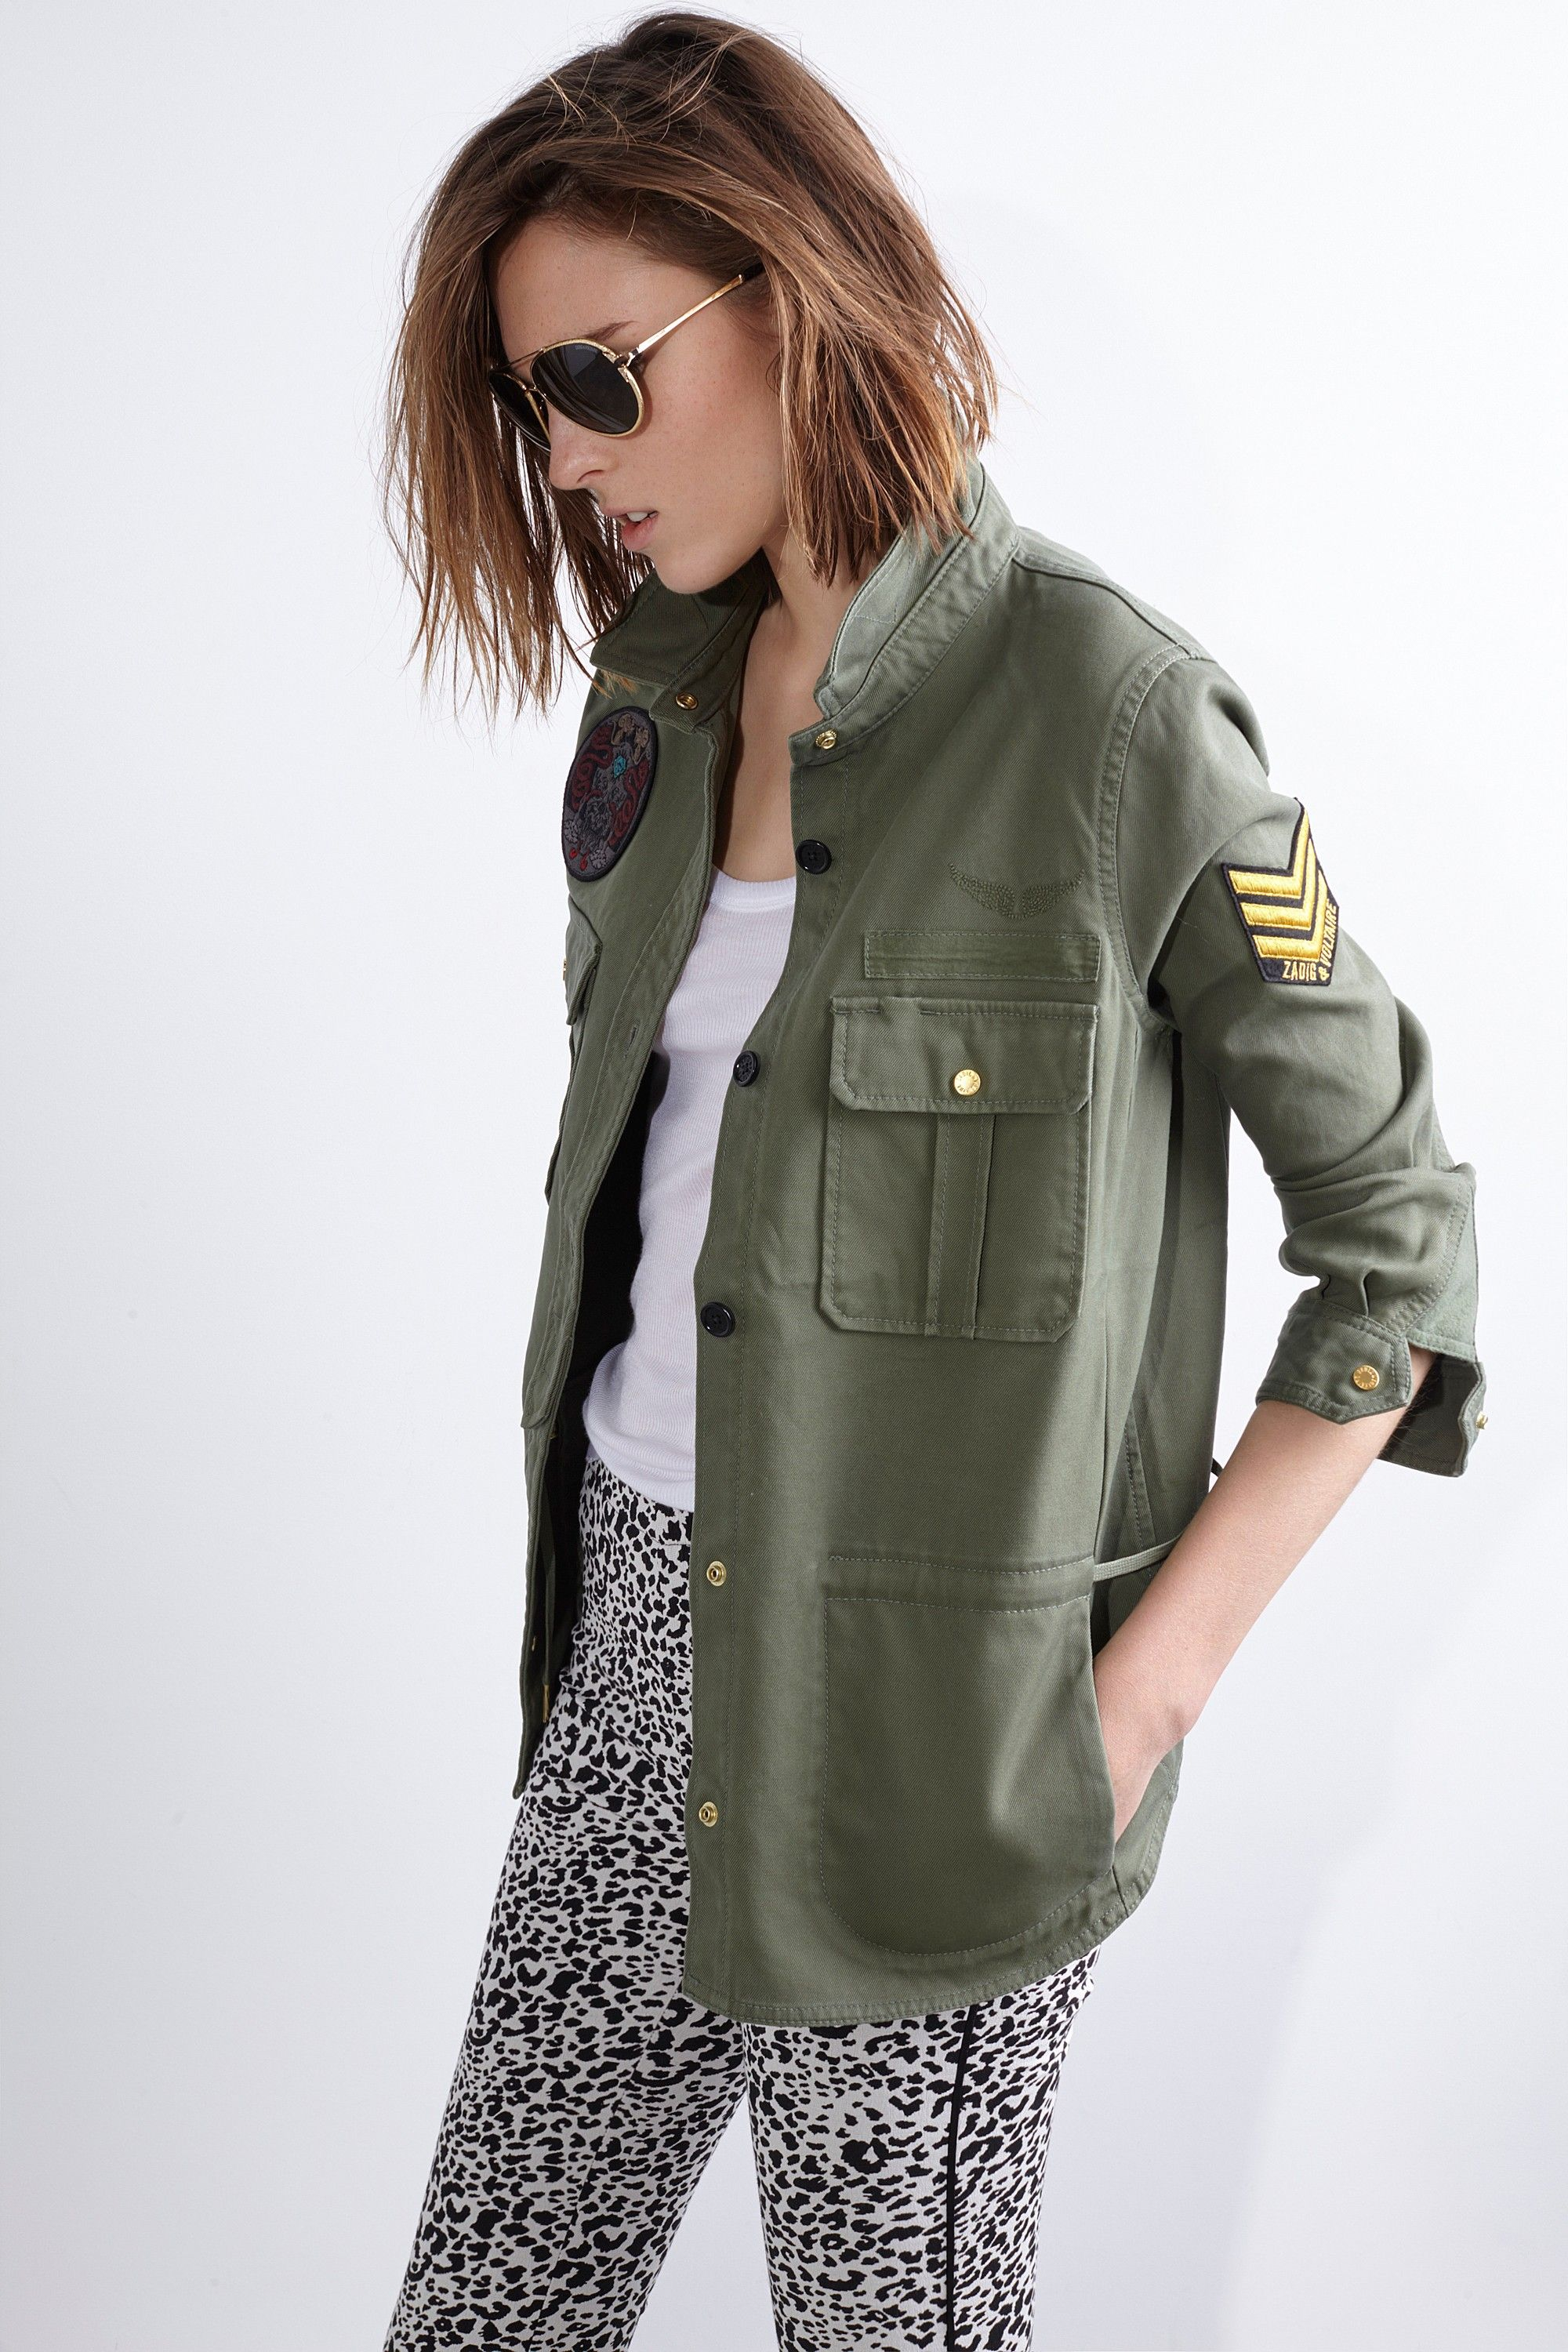 Souvent Tackl Army Overshirt, khaki, Zadig & Voltaire | Autumn look book  UF54